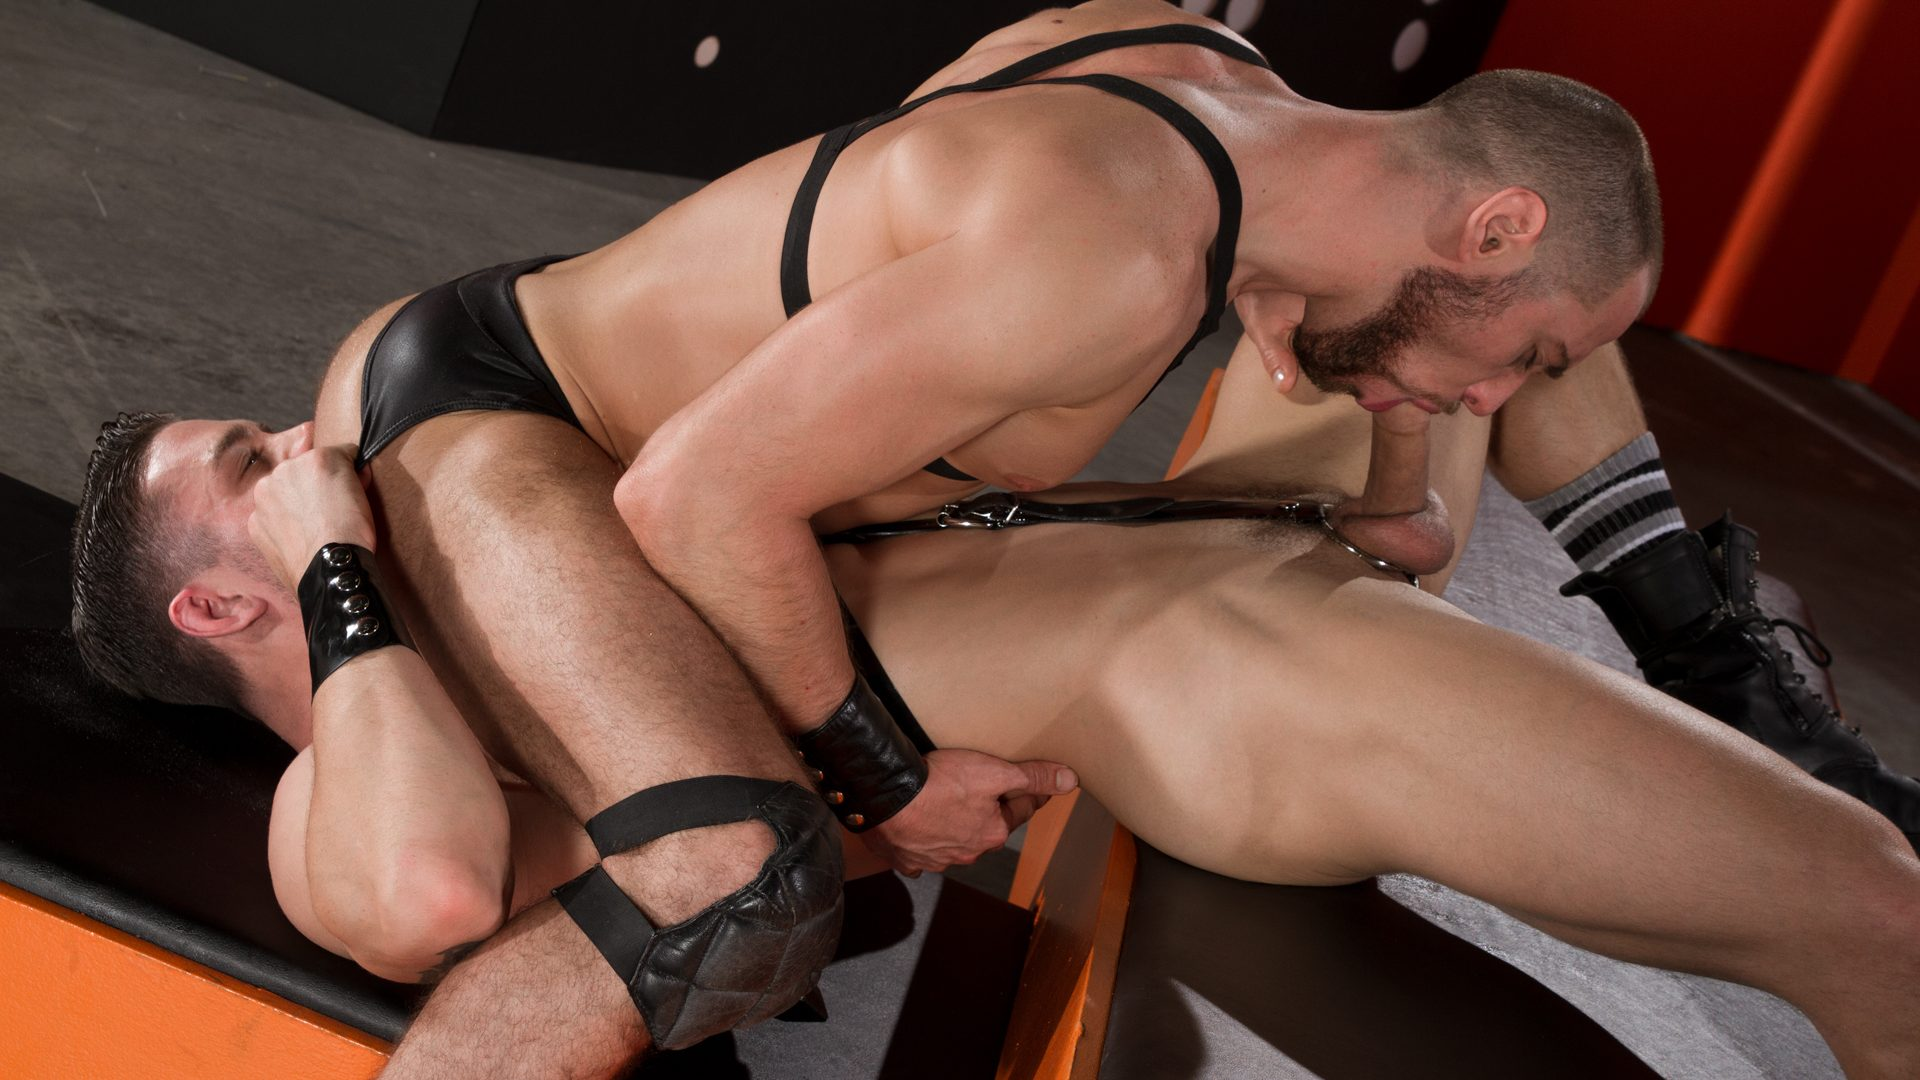 Leather Sex: Ryan Rose and Brendan Phillips